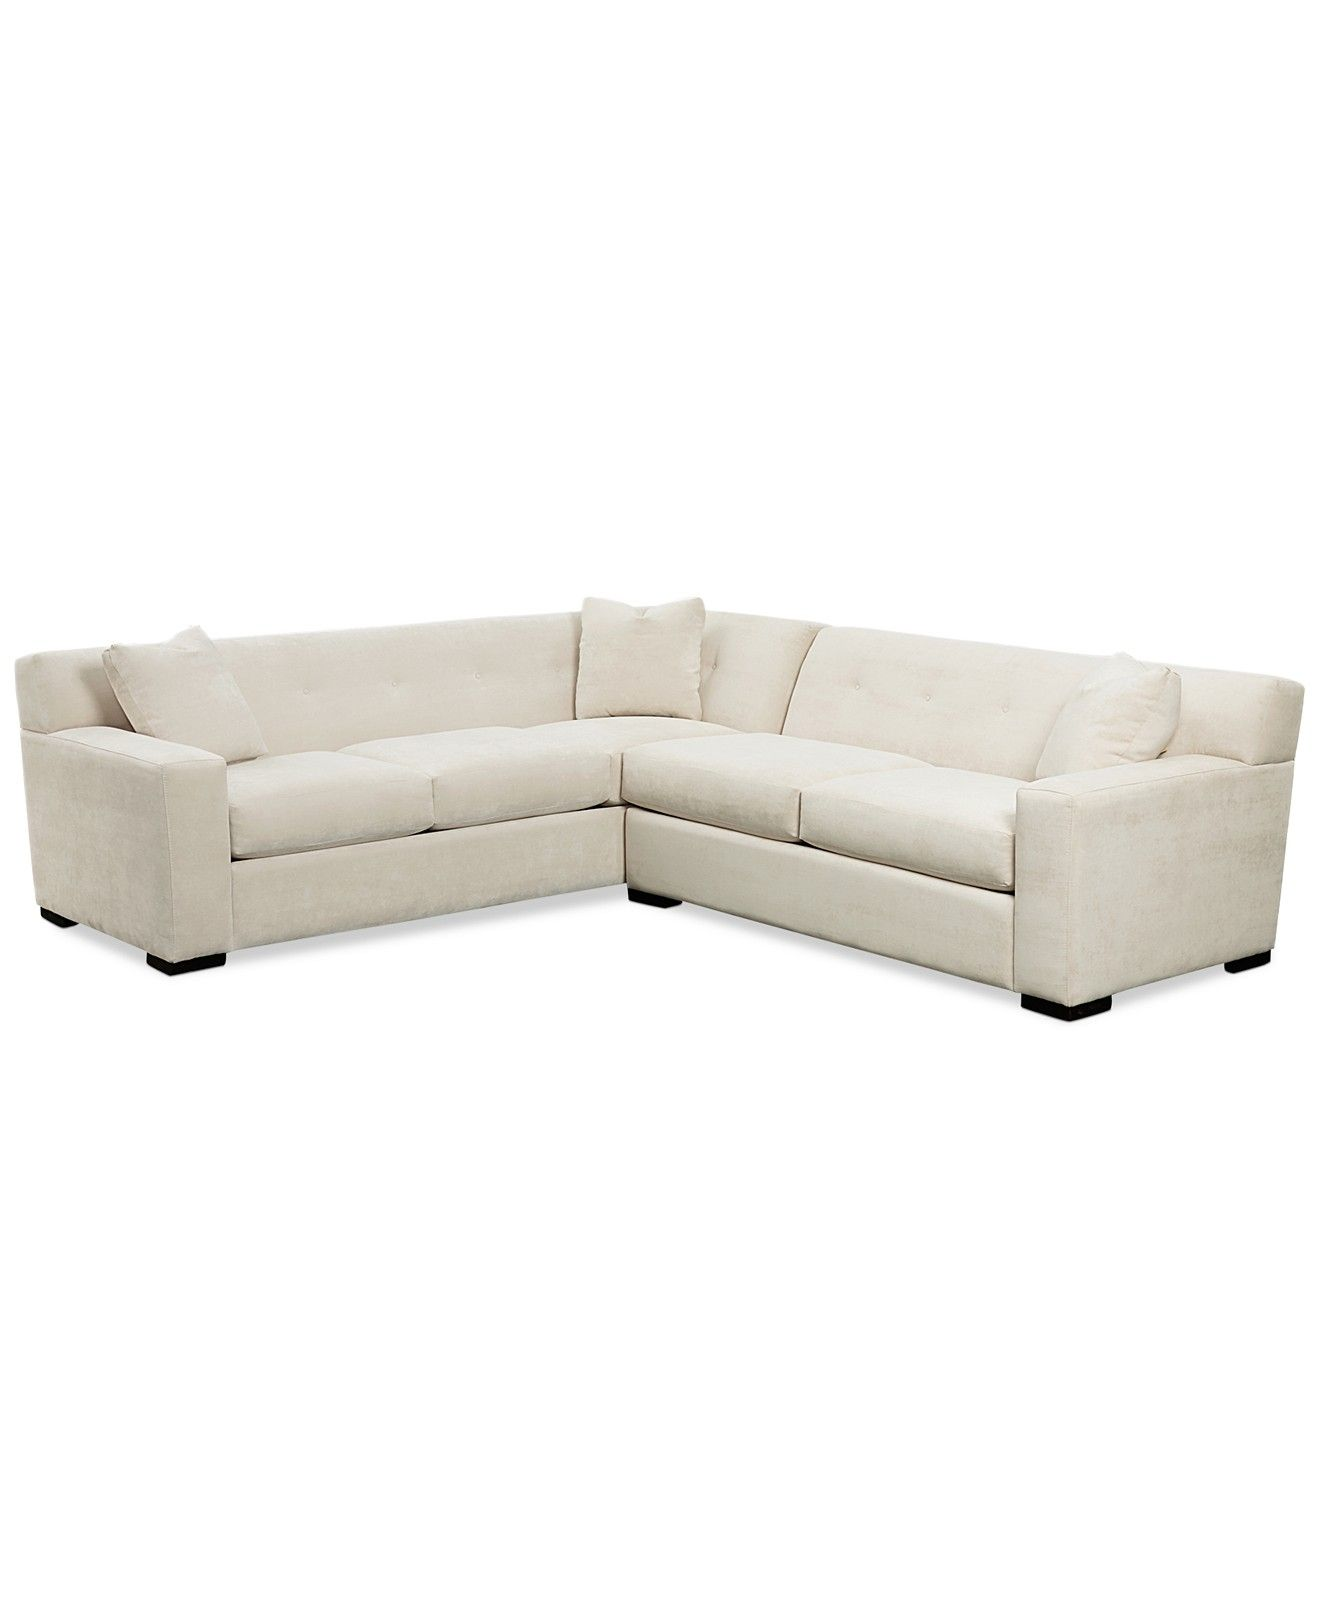 Analee 2 Piece Sectional Shop All Living Room Furniture